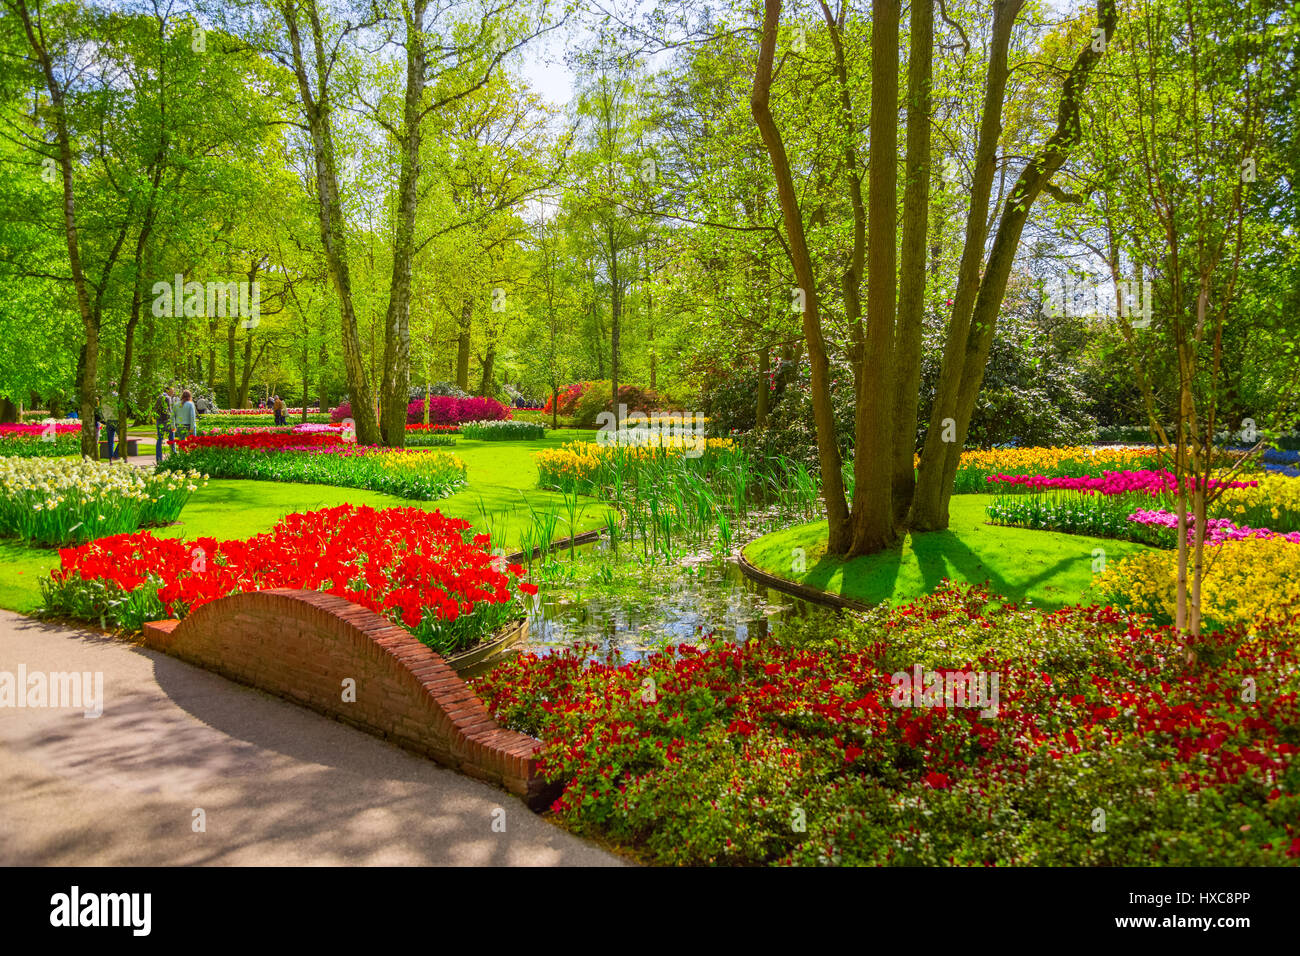 Colorful tulips in the Keukenhof park, Holland - Stock Image